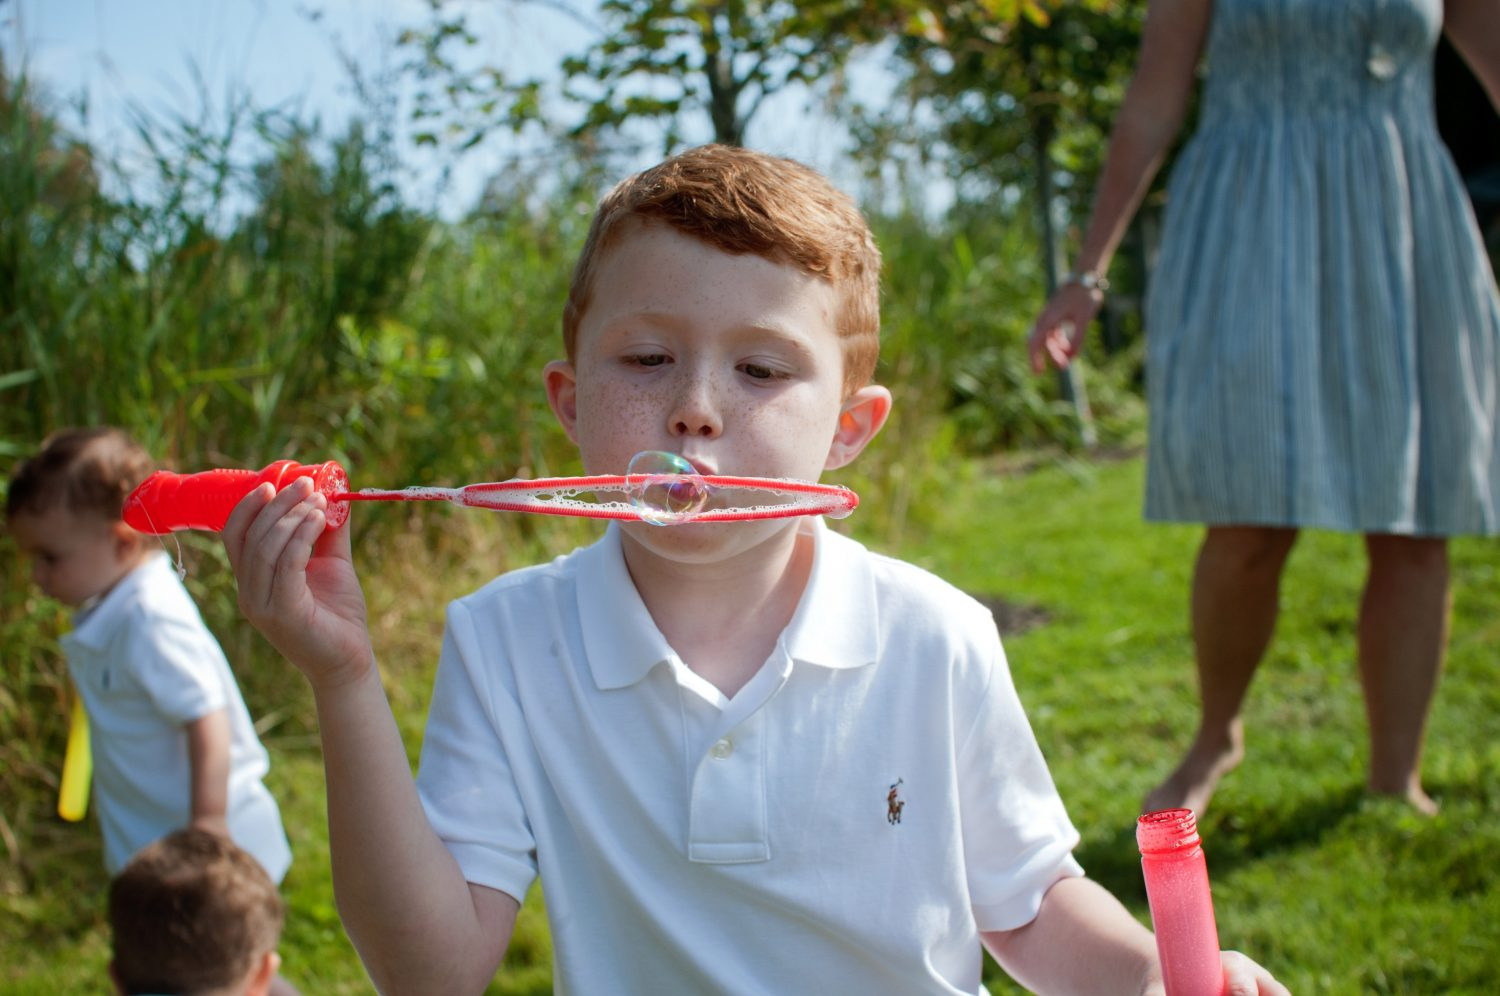 Young red headed boy blowing bubbles